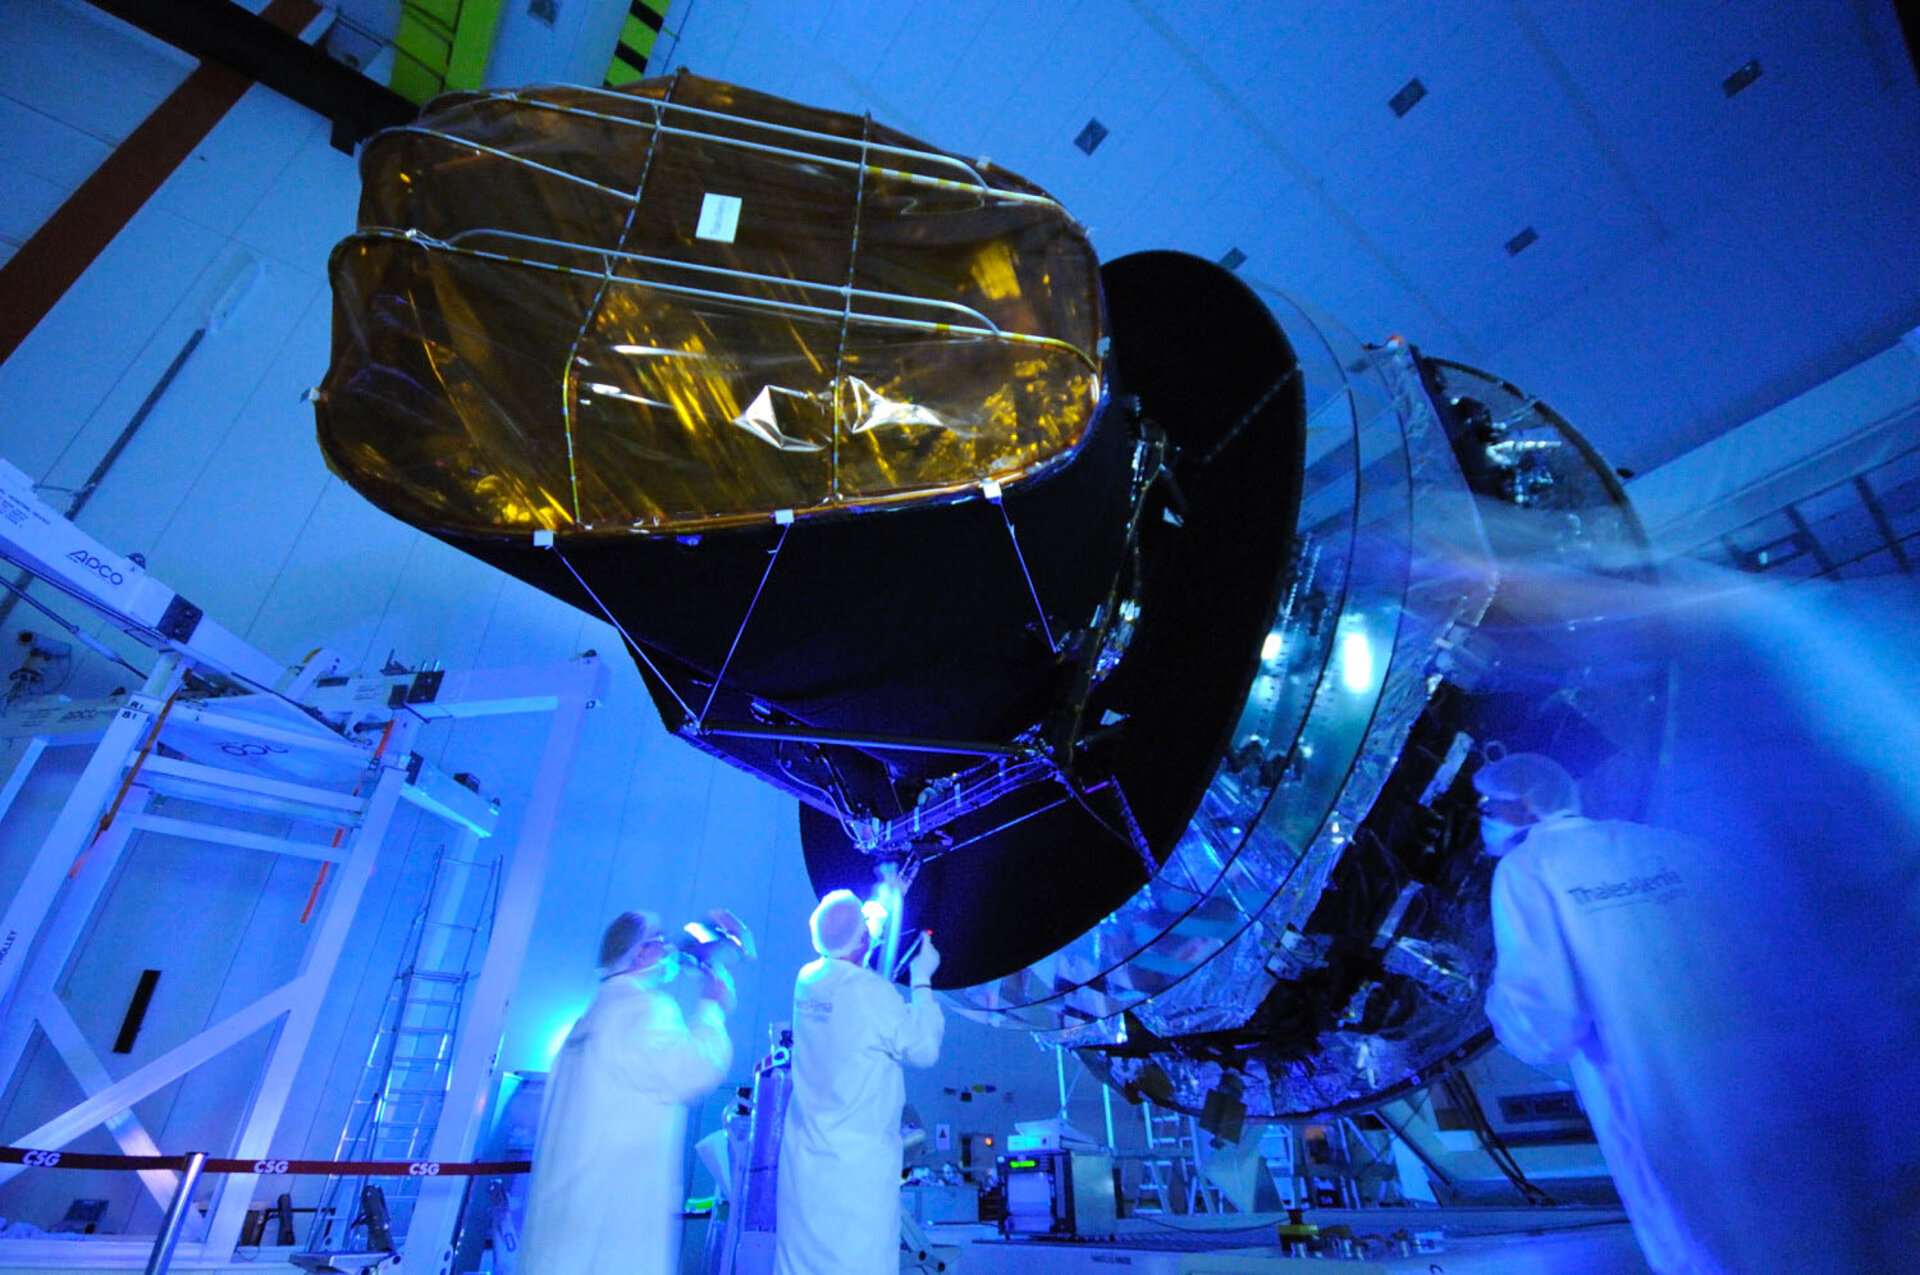 Planck inspection under ultraviolet light